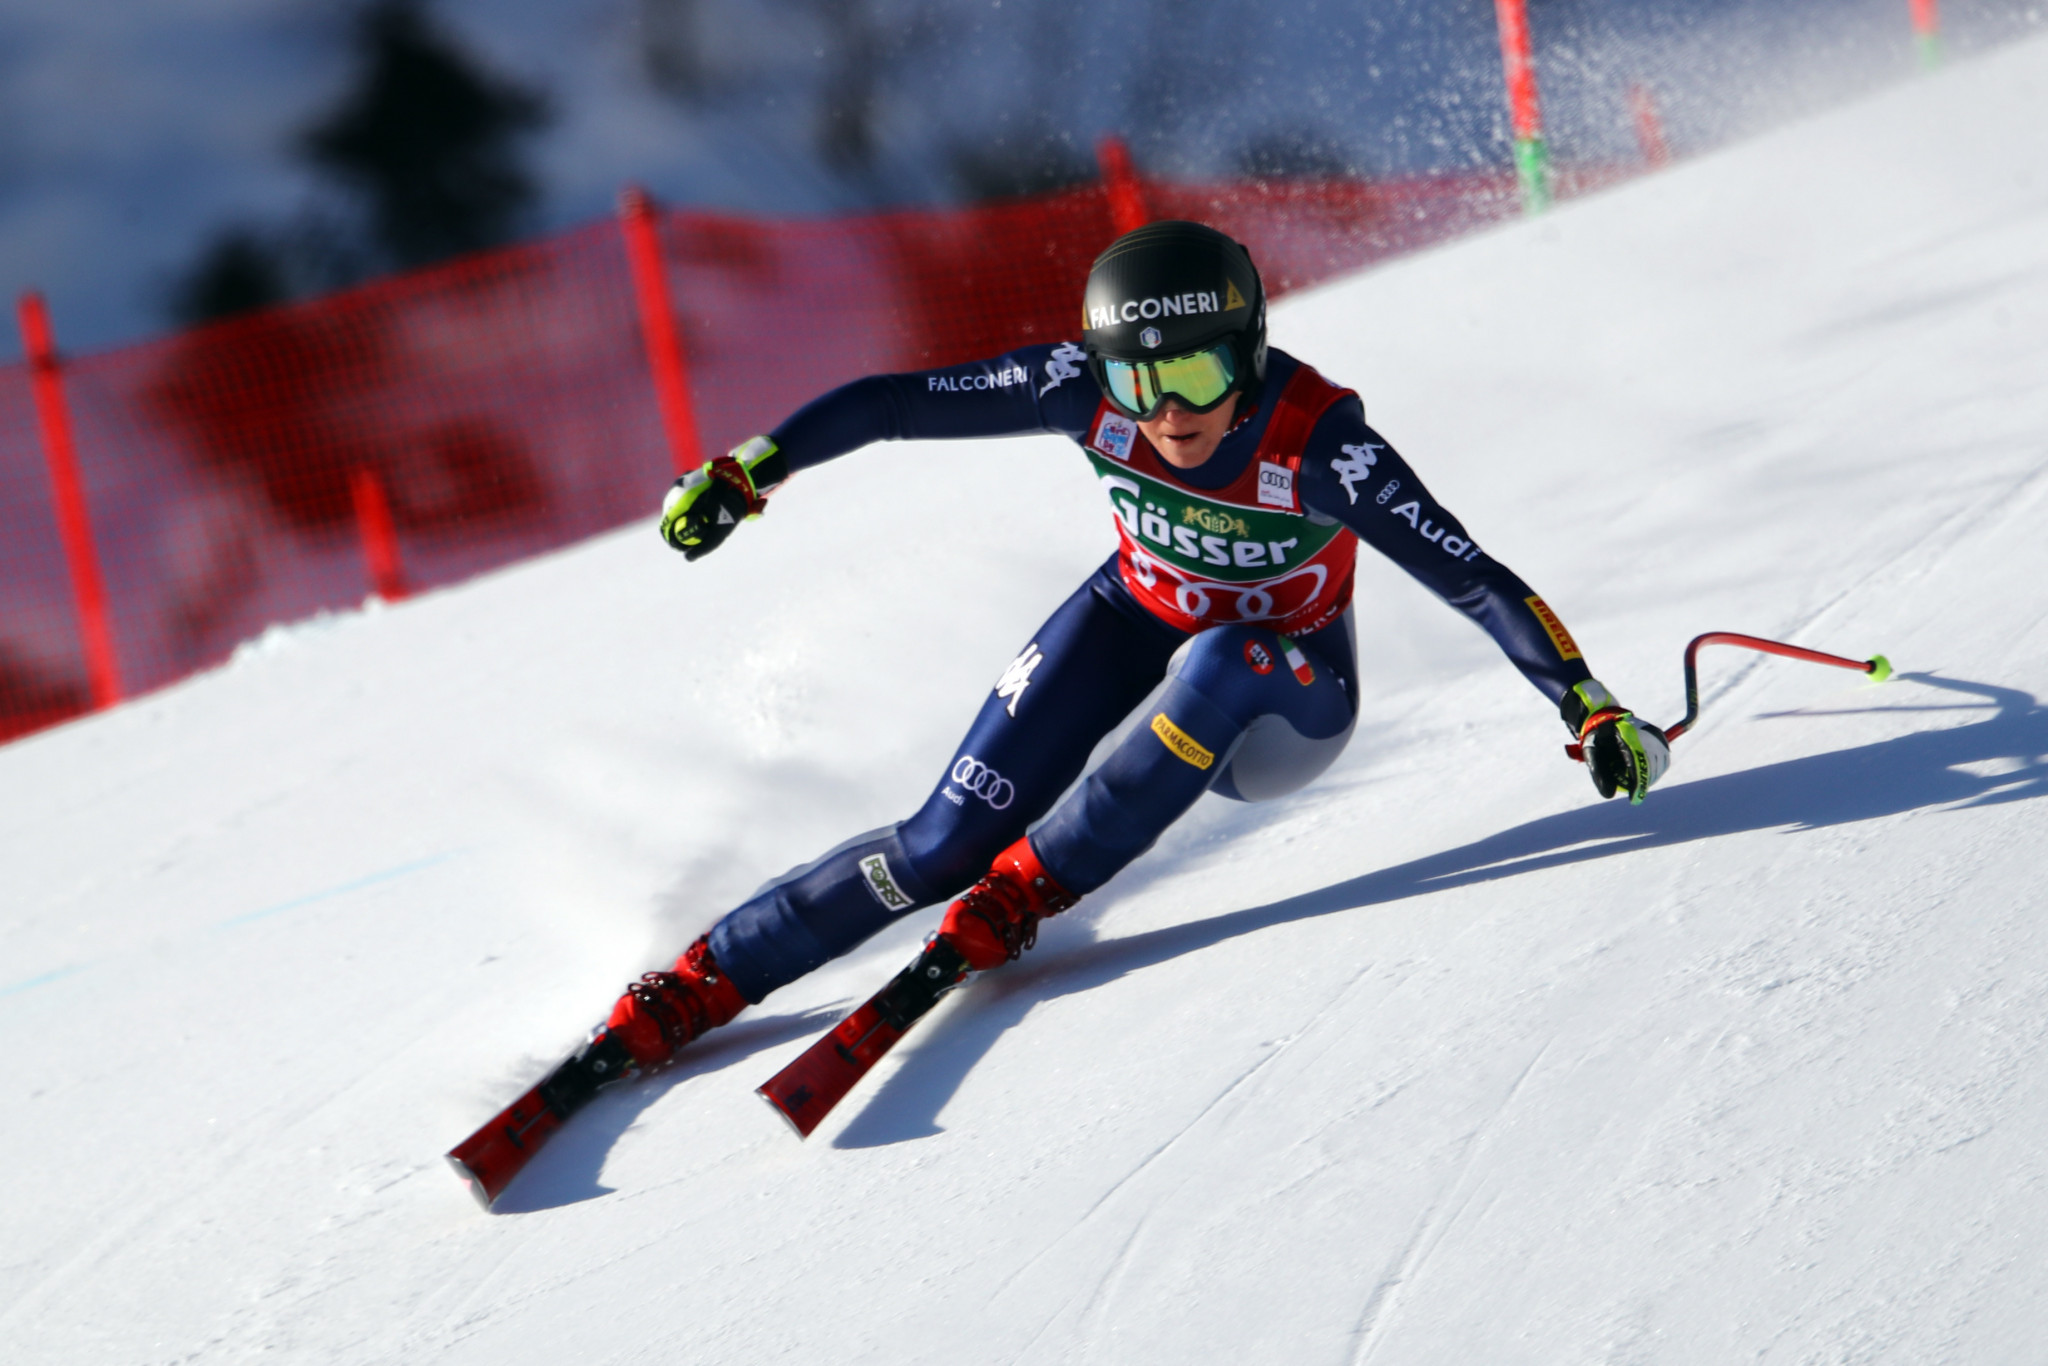 Sofia Goggia now has sole possession of the World Cup downhill standings ©Getty Images